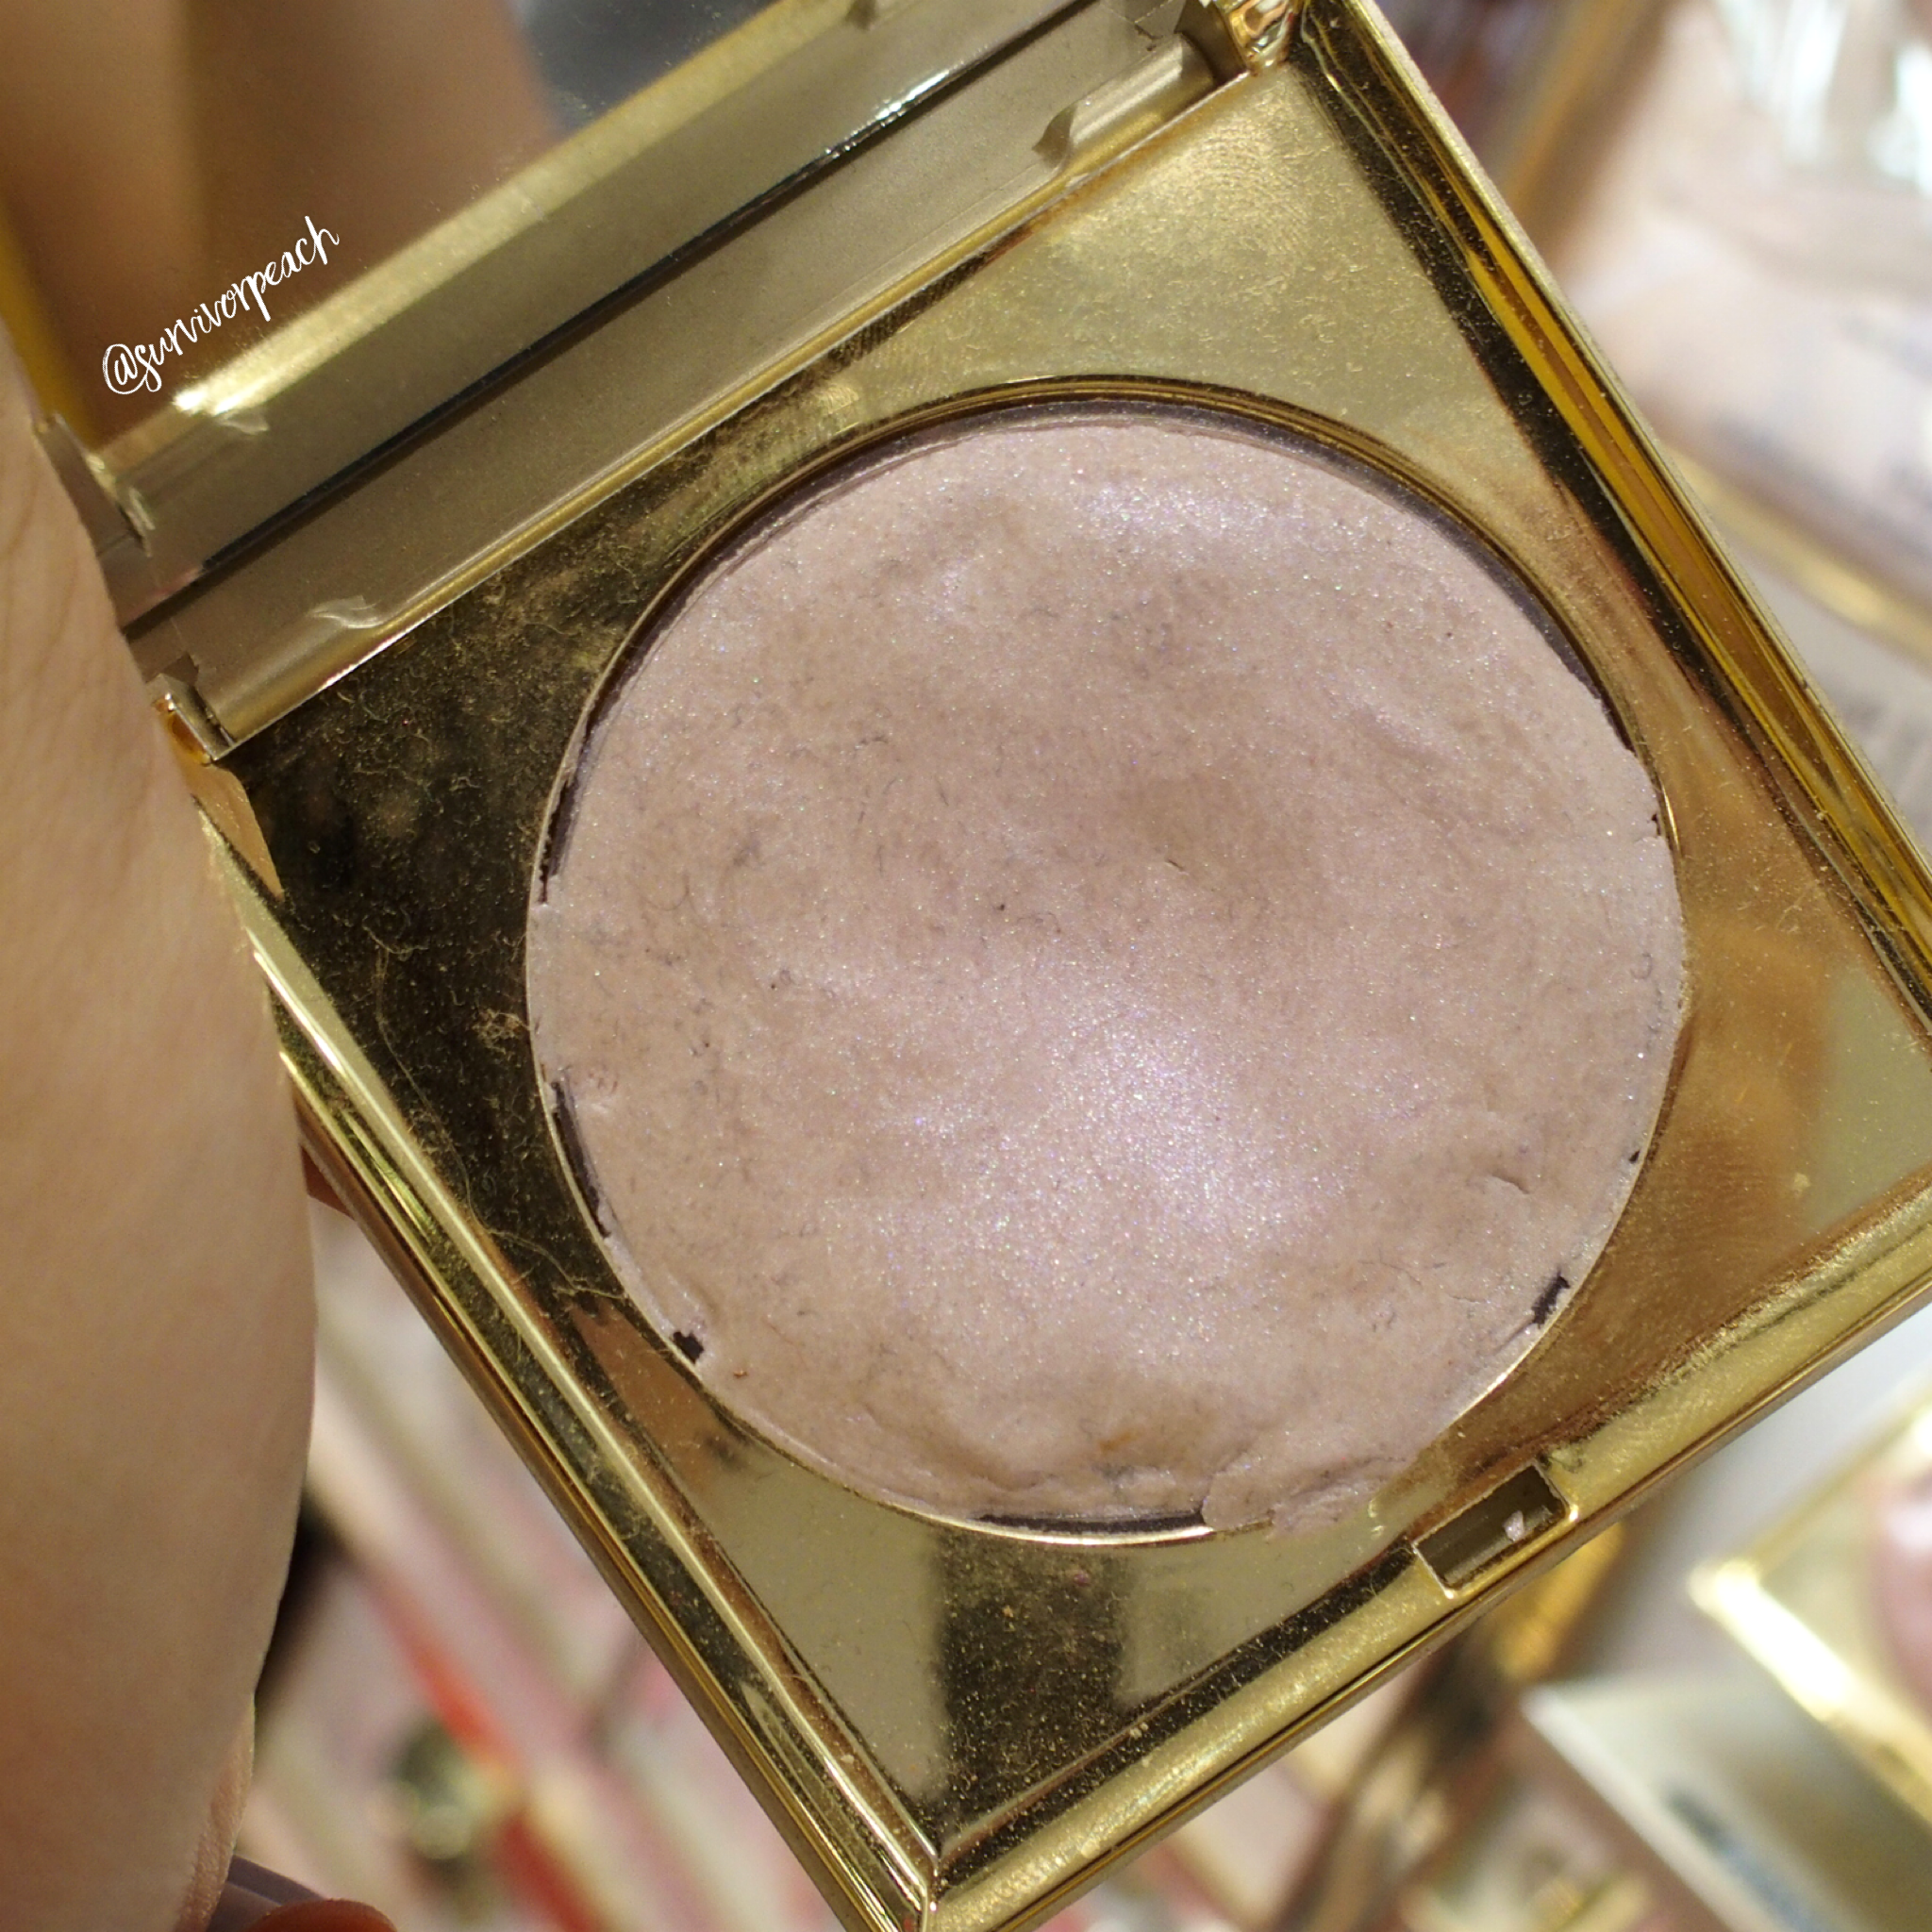 Stila Heavenly Hue Highlighter - Transcendence